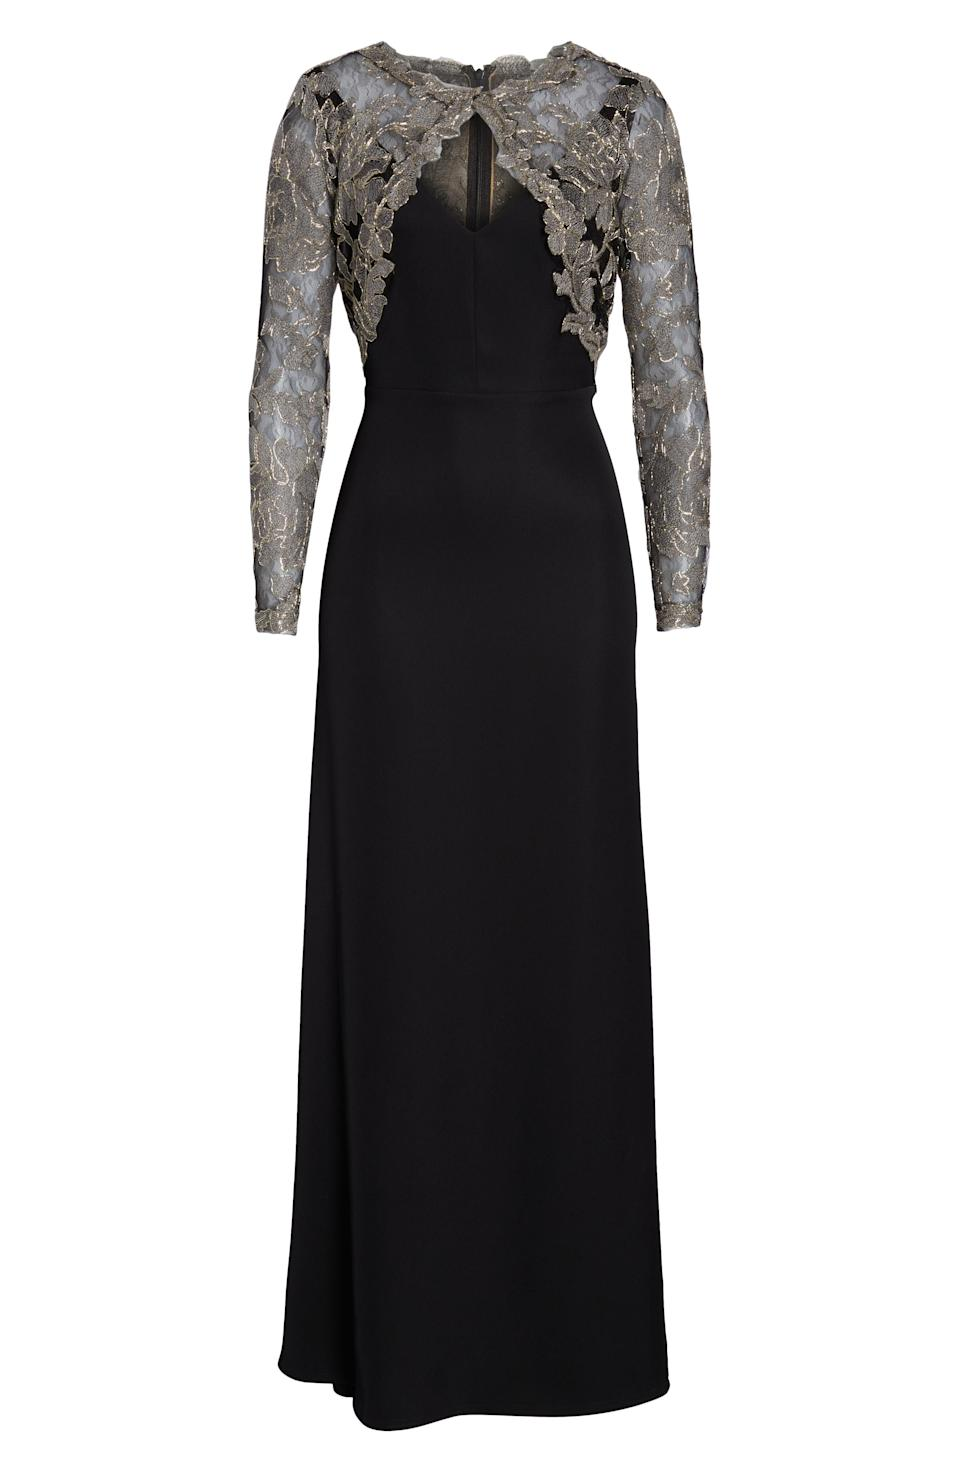 """<p><strong>Tadashi Shoji</strong></p><p>nordstrom.com</p><p><strong>$308.00</strong></p><p><a href=""""https://go.redirectingat.com?id=74968X1596630&url=https%3A%2F%2Fshop.nordstrom.com%2Fs%2Ftadashi-shoji-crepe-embroidered-lace-gown%2F4935863&sref=http%3A%2F%2Fwww.townandcountrymag.com%2Fstyle%2Ffashion-trends%2Fg26522706%2Fbest-dresses-for-older-women%2F"""" rel=""""nofollow noopener"""" target=""""_blank"""" data-ylk=""""slk:Shop Now"""" class=""""link rapid-noclick-resp"""">Shop Now</a></p><p>Glinting metallic lace makes his elegant gown accessories-optional. </p>"""